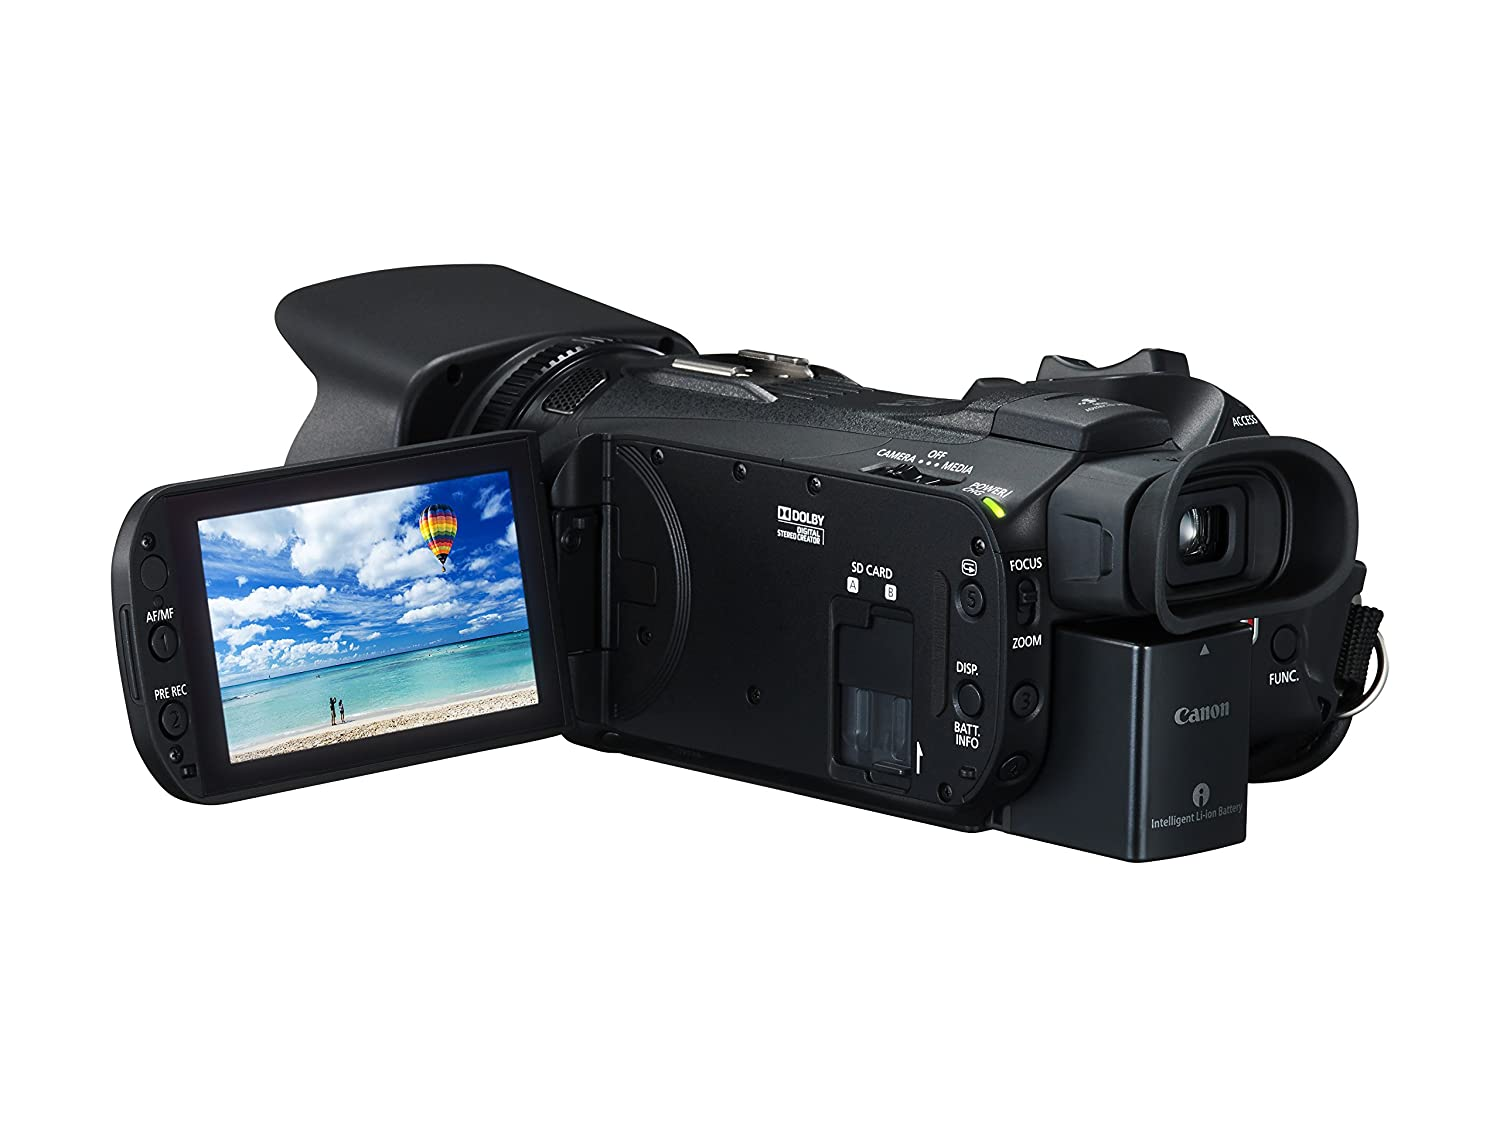 Buy Canon VIXIA HF G40 Camcorder Online at Low Price in India | Canon  Camera Reviews & Ratings - Amazon.in